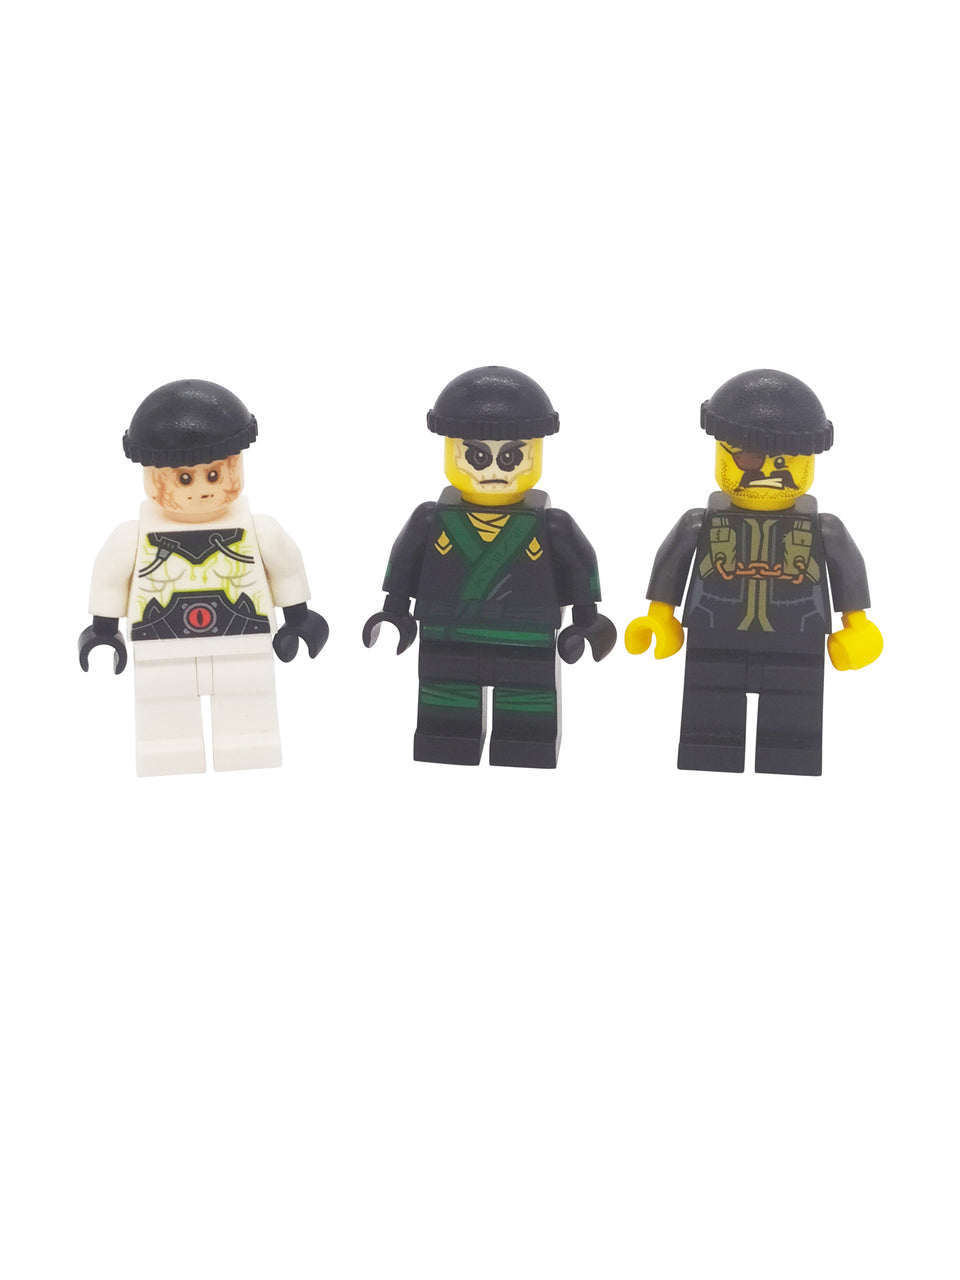 special Trio of minifigure lego #13